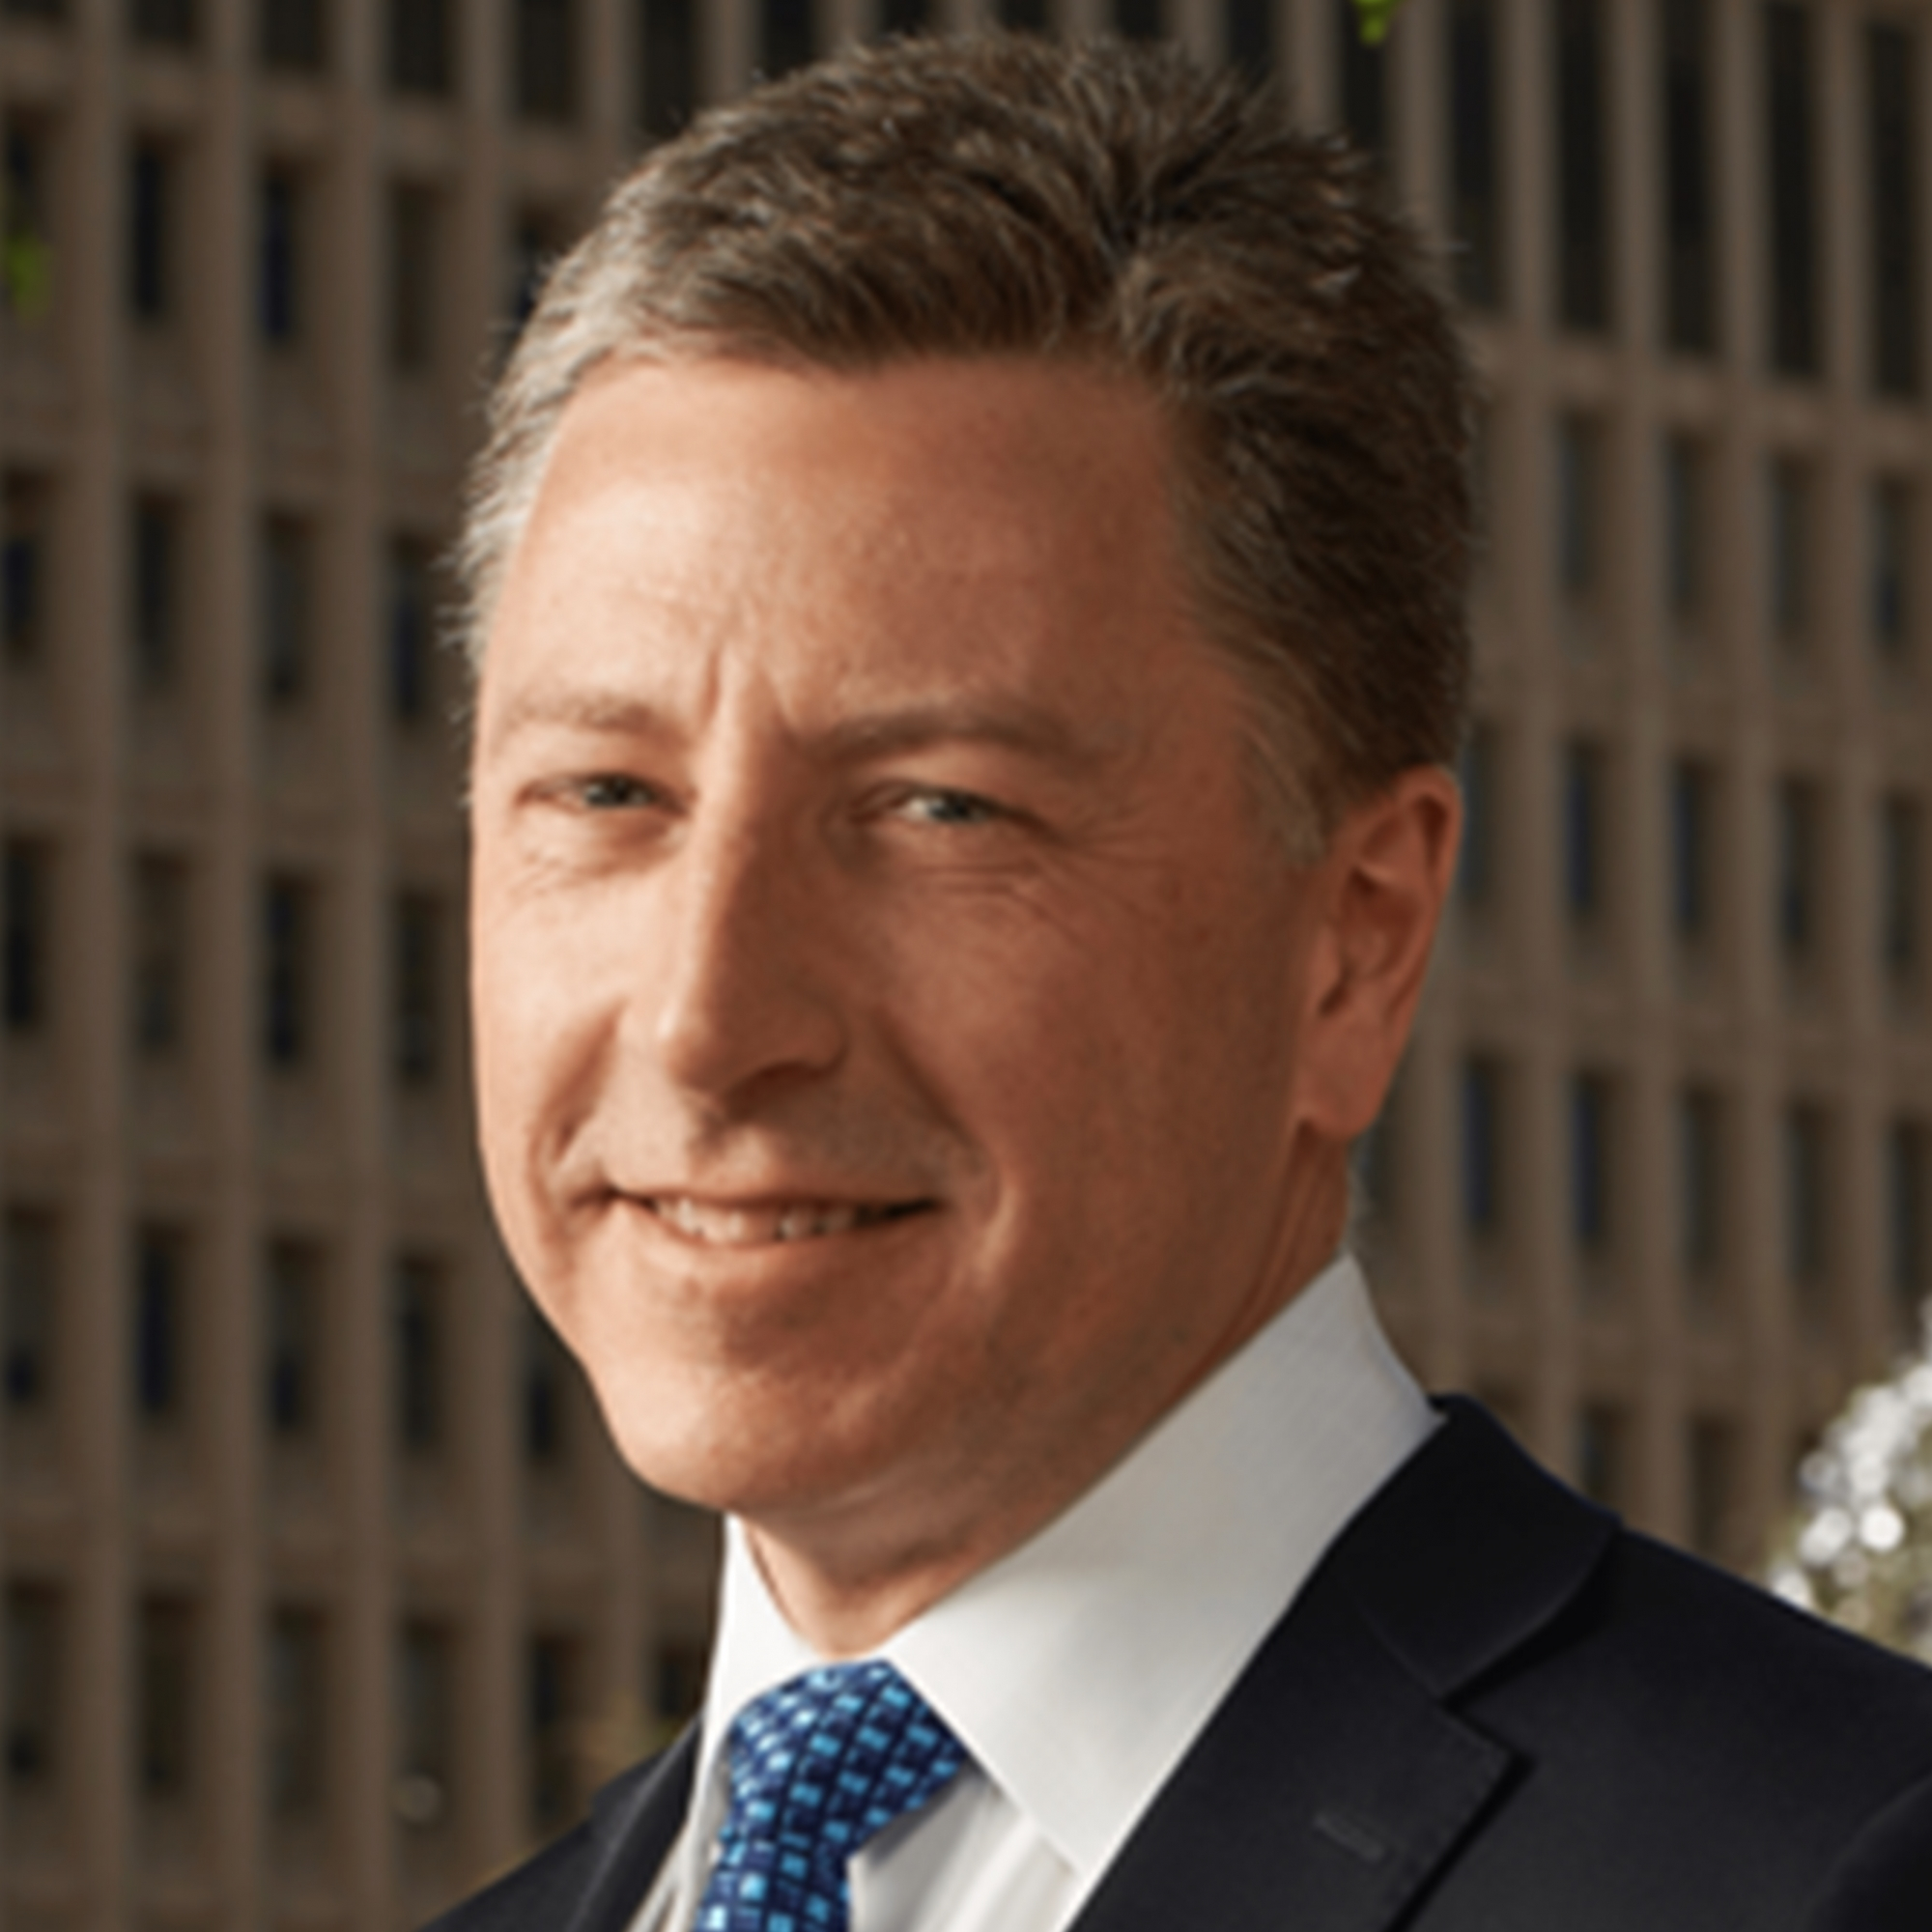 photo: a professional headshot of Board of Advisor Kurt Volker